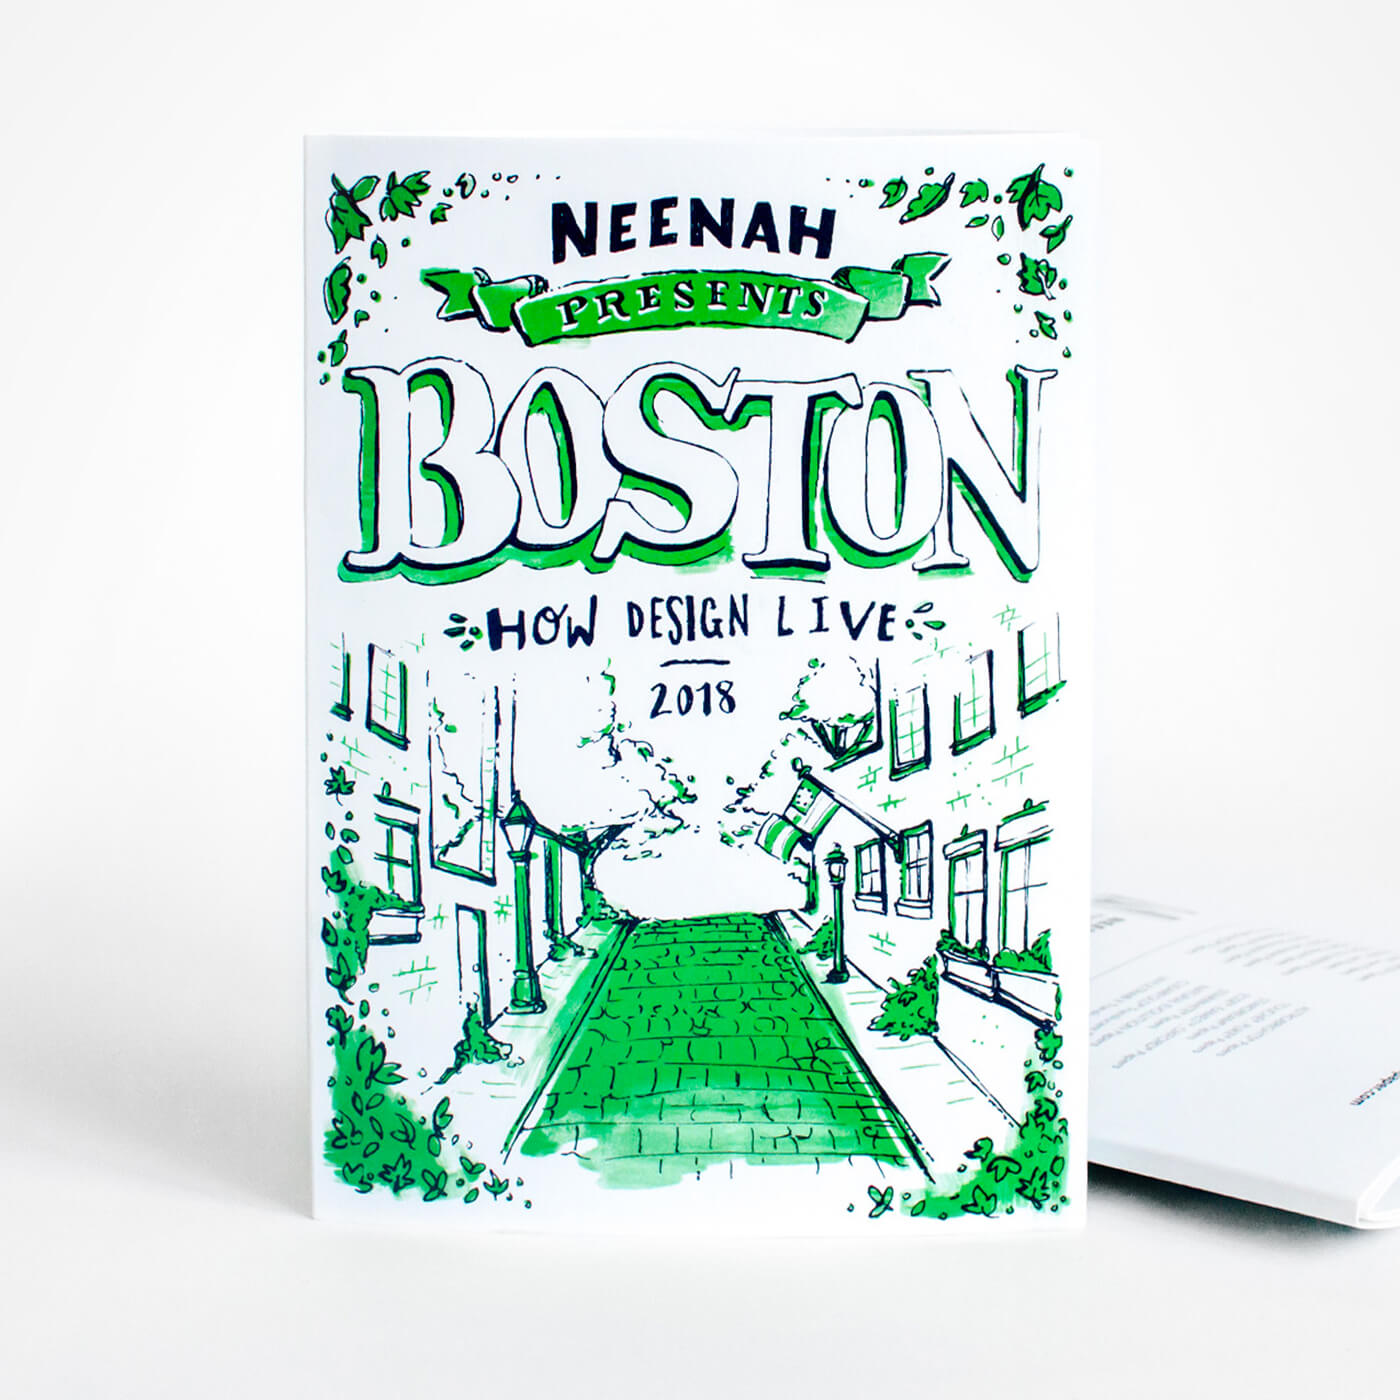 Neenah Presents Boston - An illustrated guide of the Hub of the Universe, featuring a full map of Boston and illustrations of its history of architecture, culture, and design.View Project →